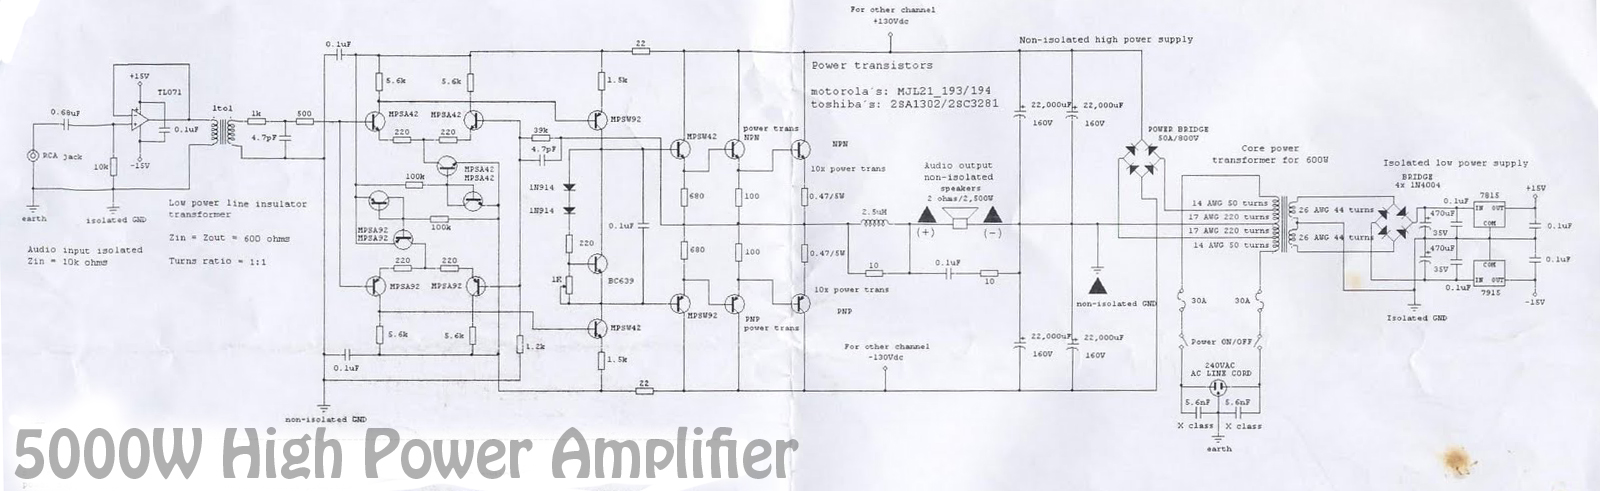 5000 watts amplifier schematic diagrams 5000w high power amplifier audio circuits electronic circuit  5000w high power amplifier audio